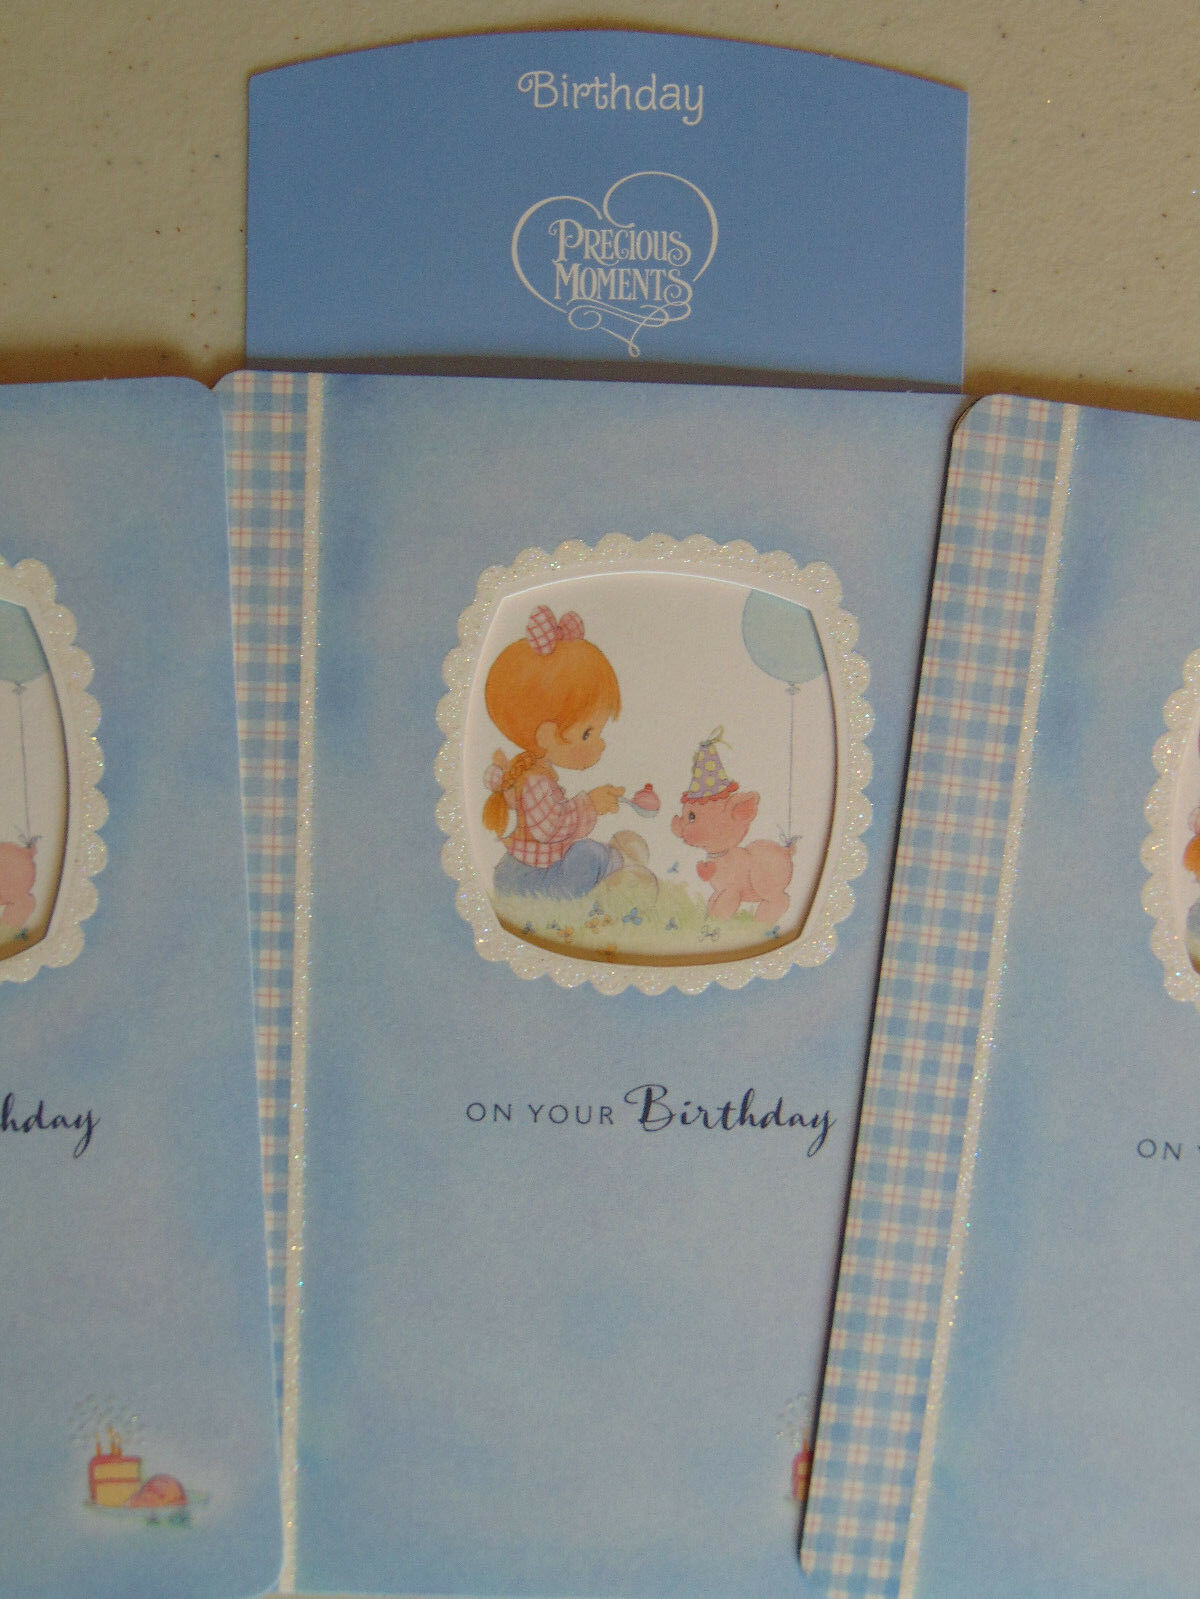 3 Precious Moments BIRTHDAY Greeting Cards, Christian Bible Scripture Verse  for sale online